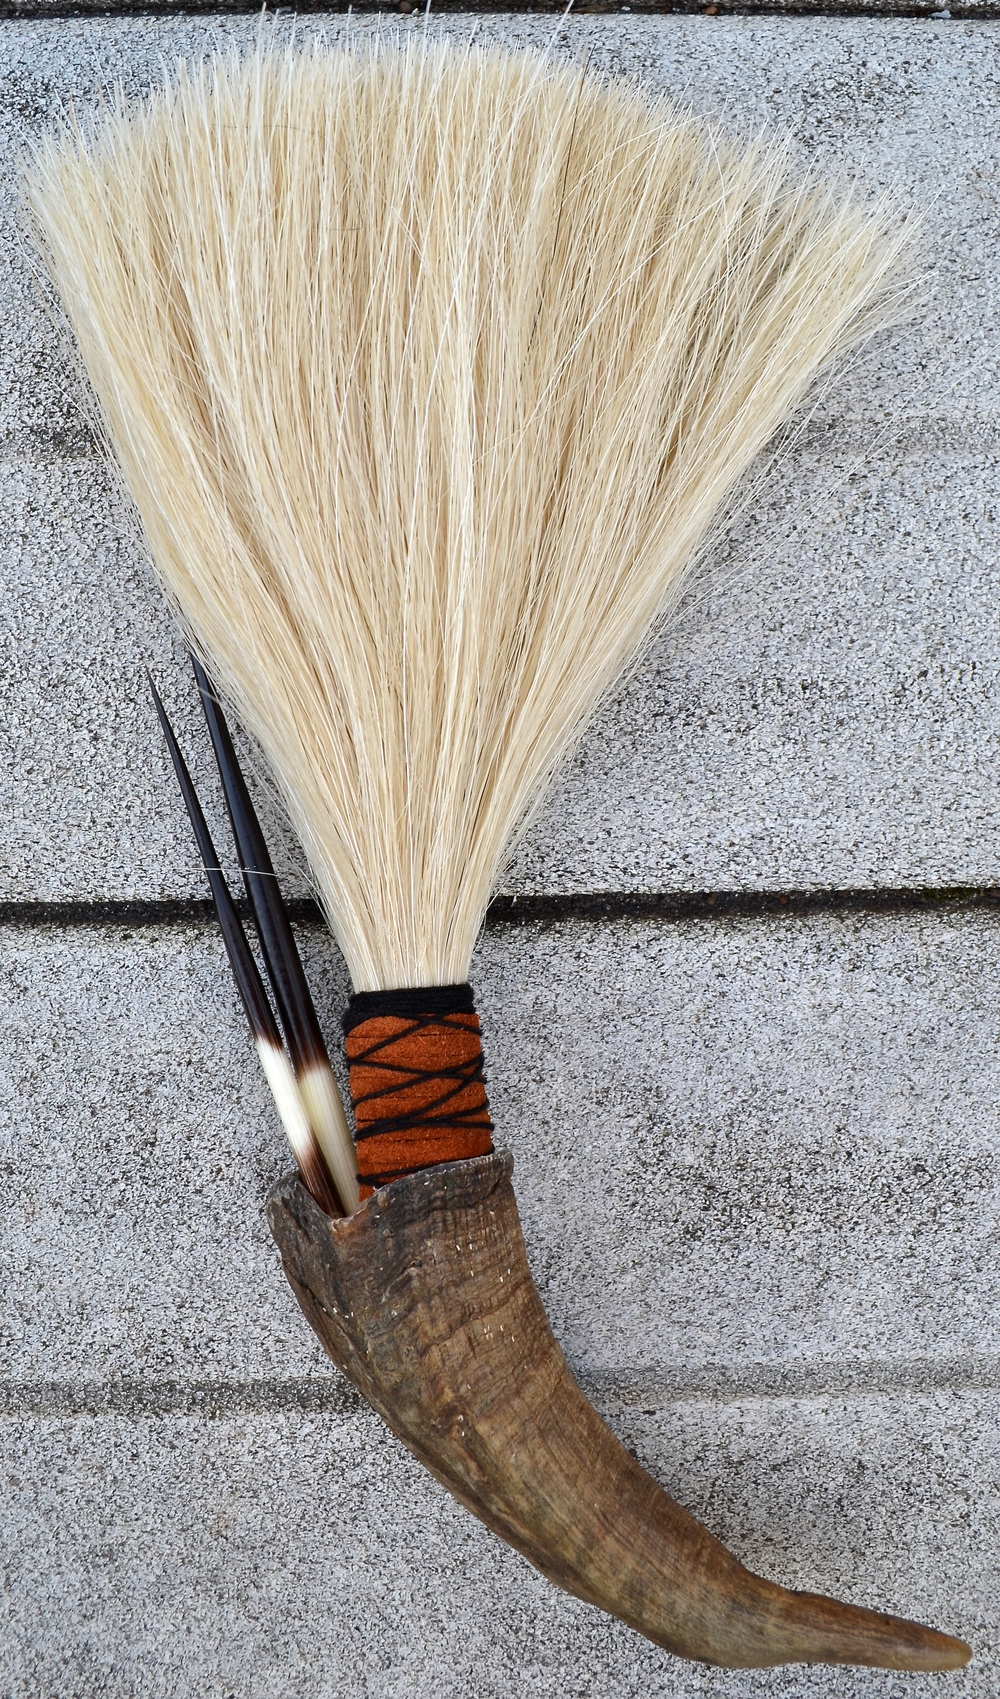 Goat horn, horse hair, twine, leather, and porcupine quills (2)  Artist made primal brush for use or display